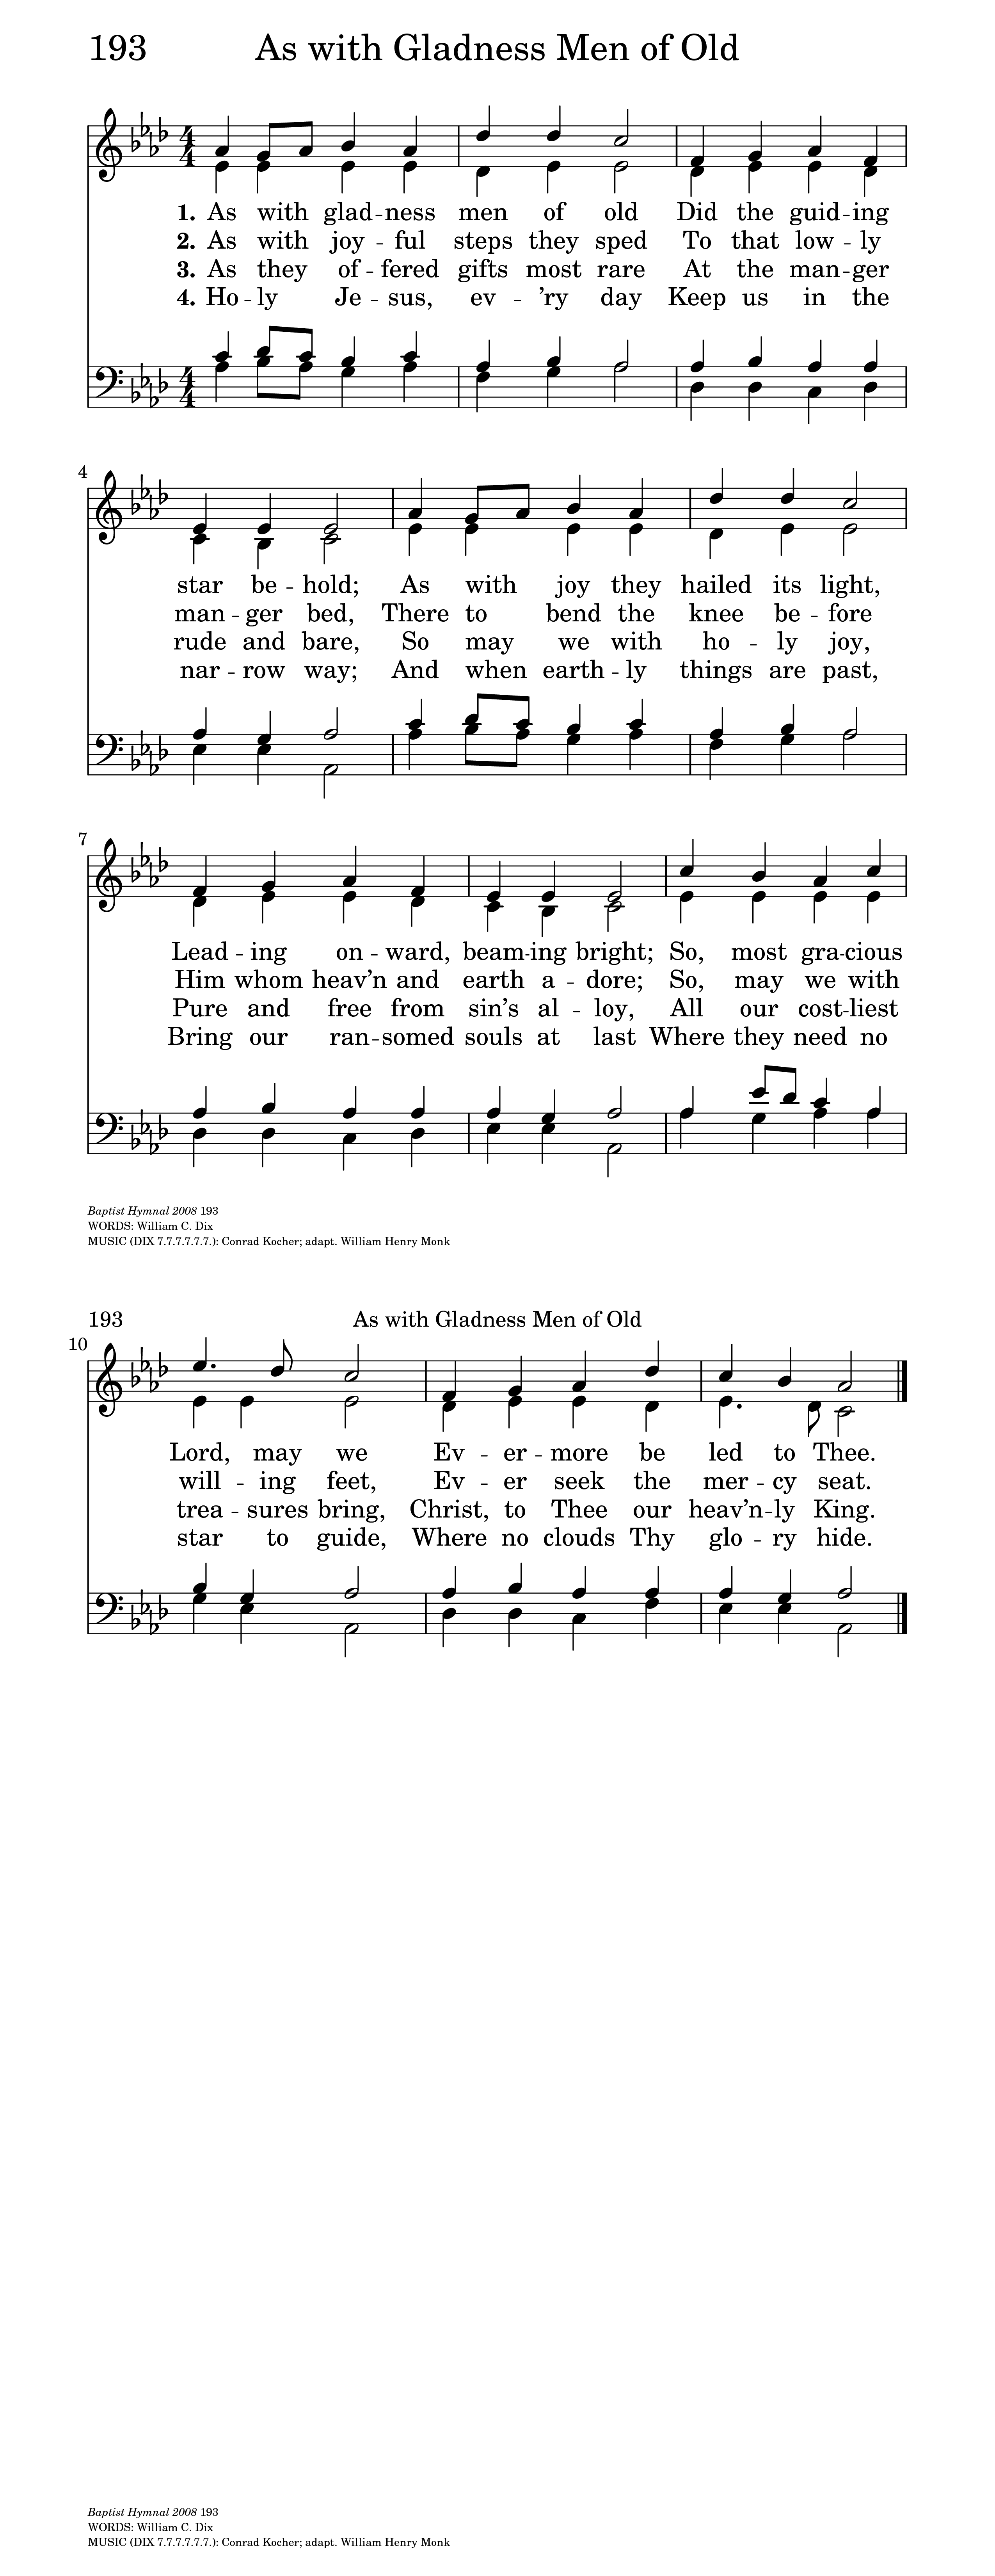 As with Gladness Men of Old | Hymnary.org